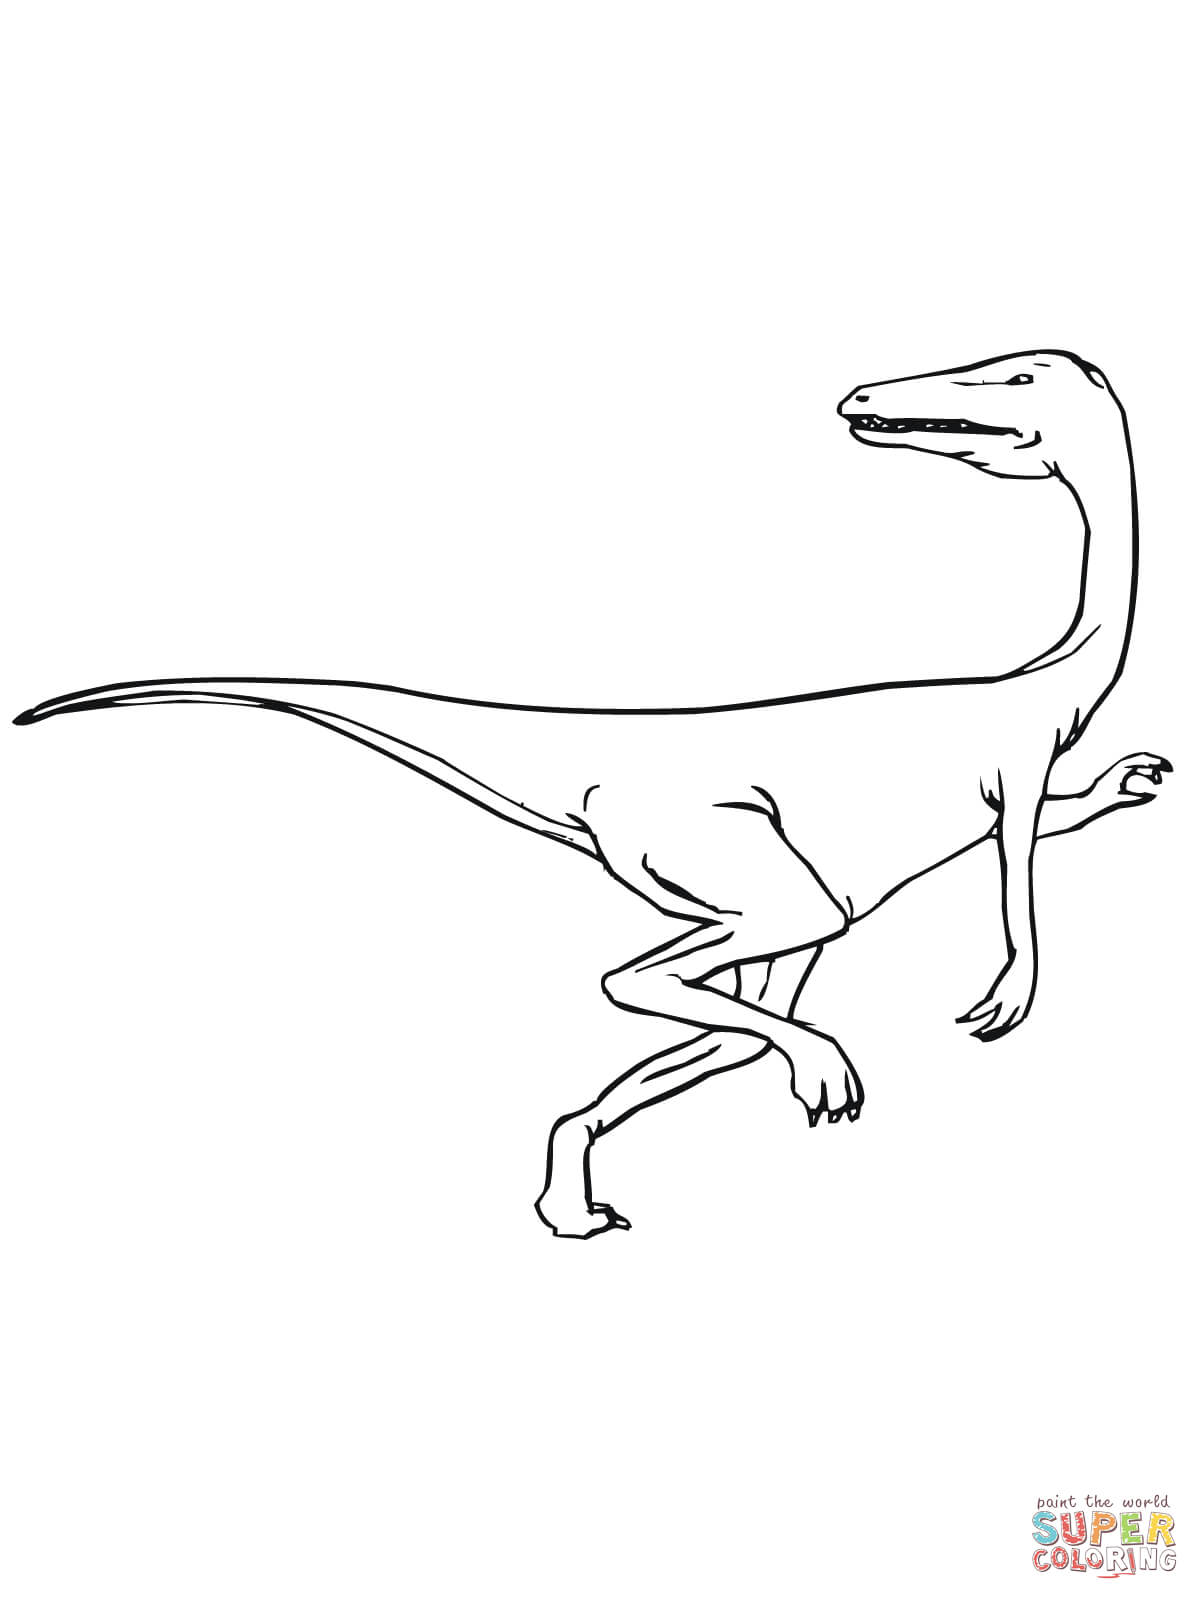 Velociraptor coloring #11, Download drawings